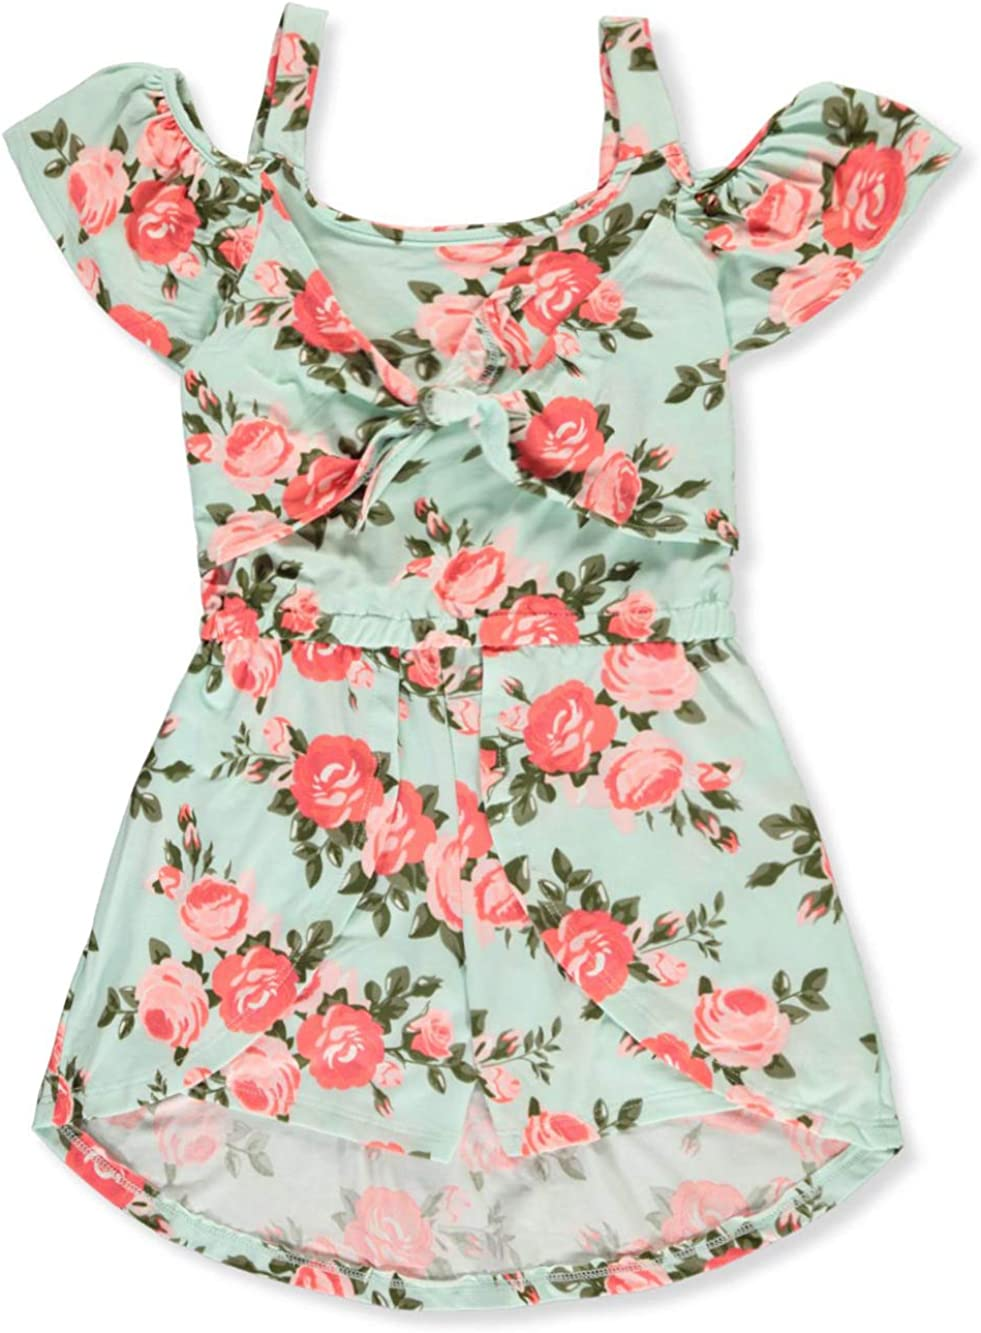 One Step Up Girls Floral Romper//Dress Combo